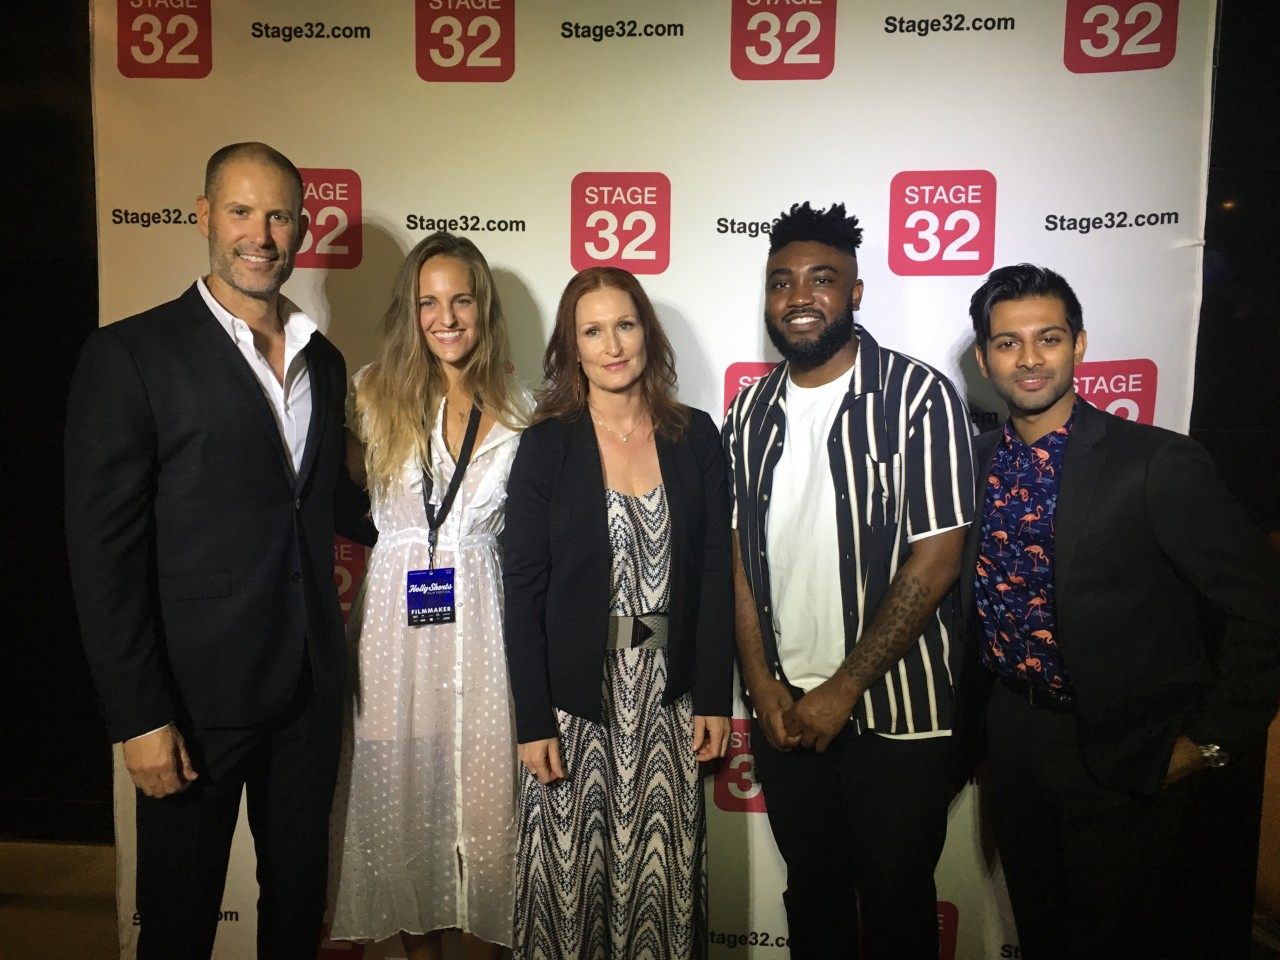 Stage 32 Joins Forces With Raindance Film Festival in London All Are Invited